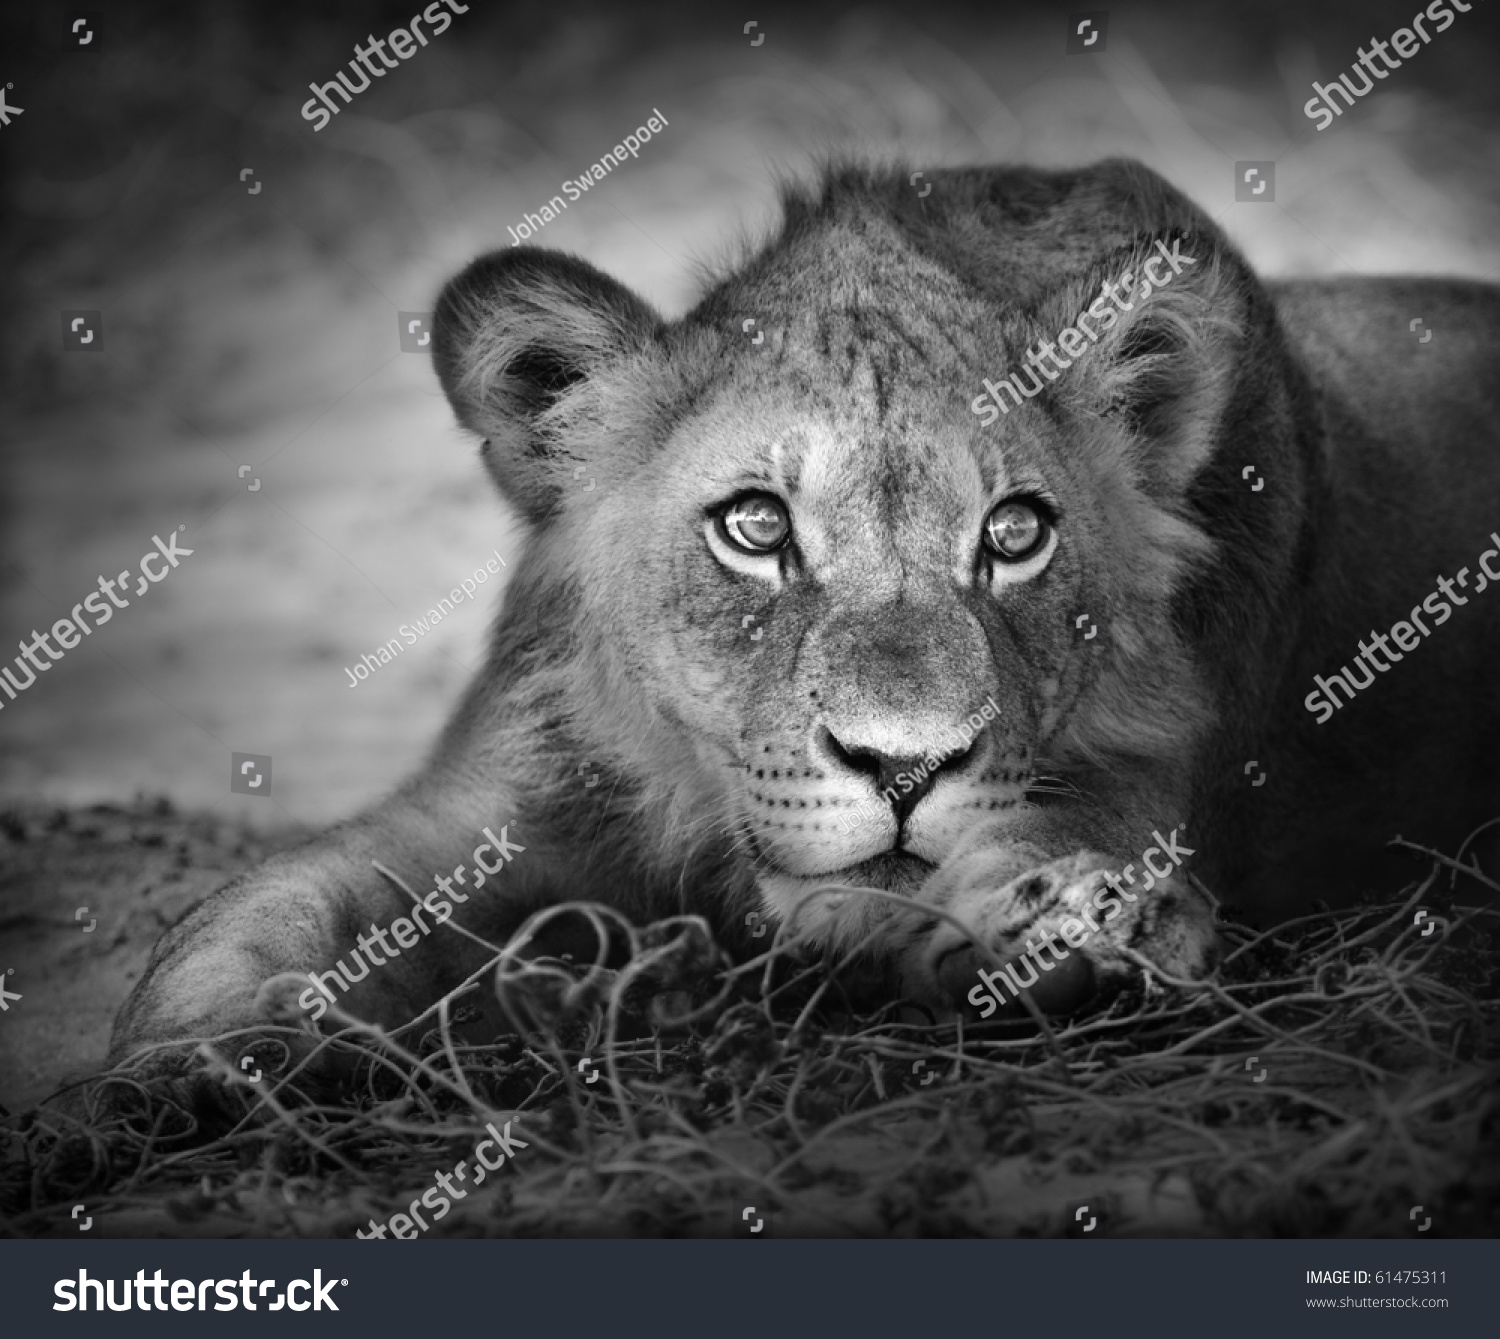 Close-up portrait of a young lion; panthera leo #61475311